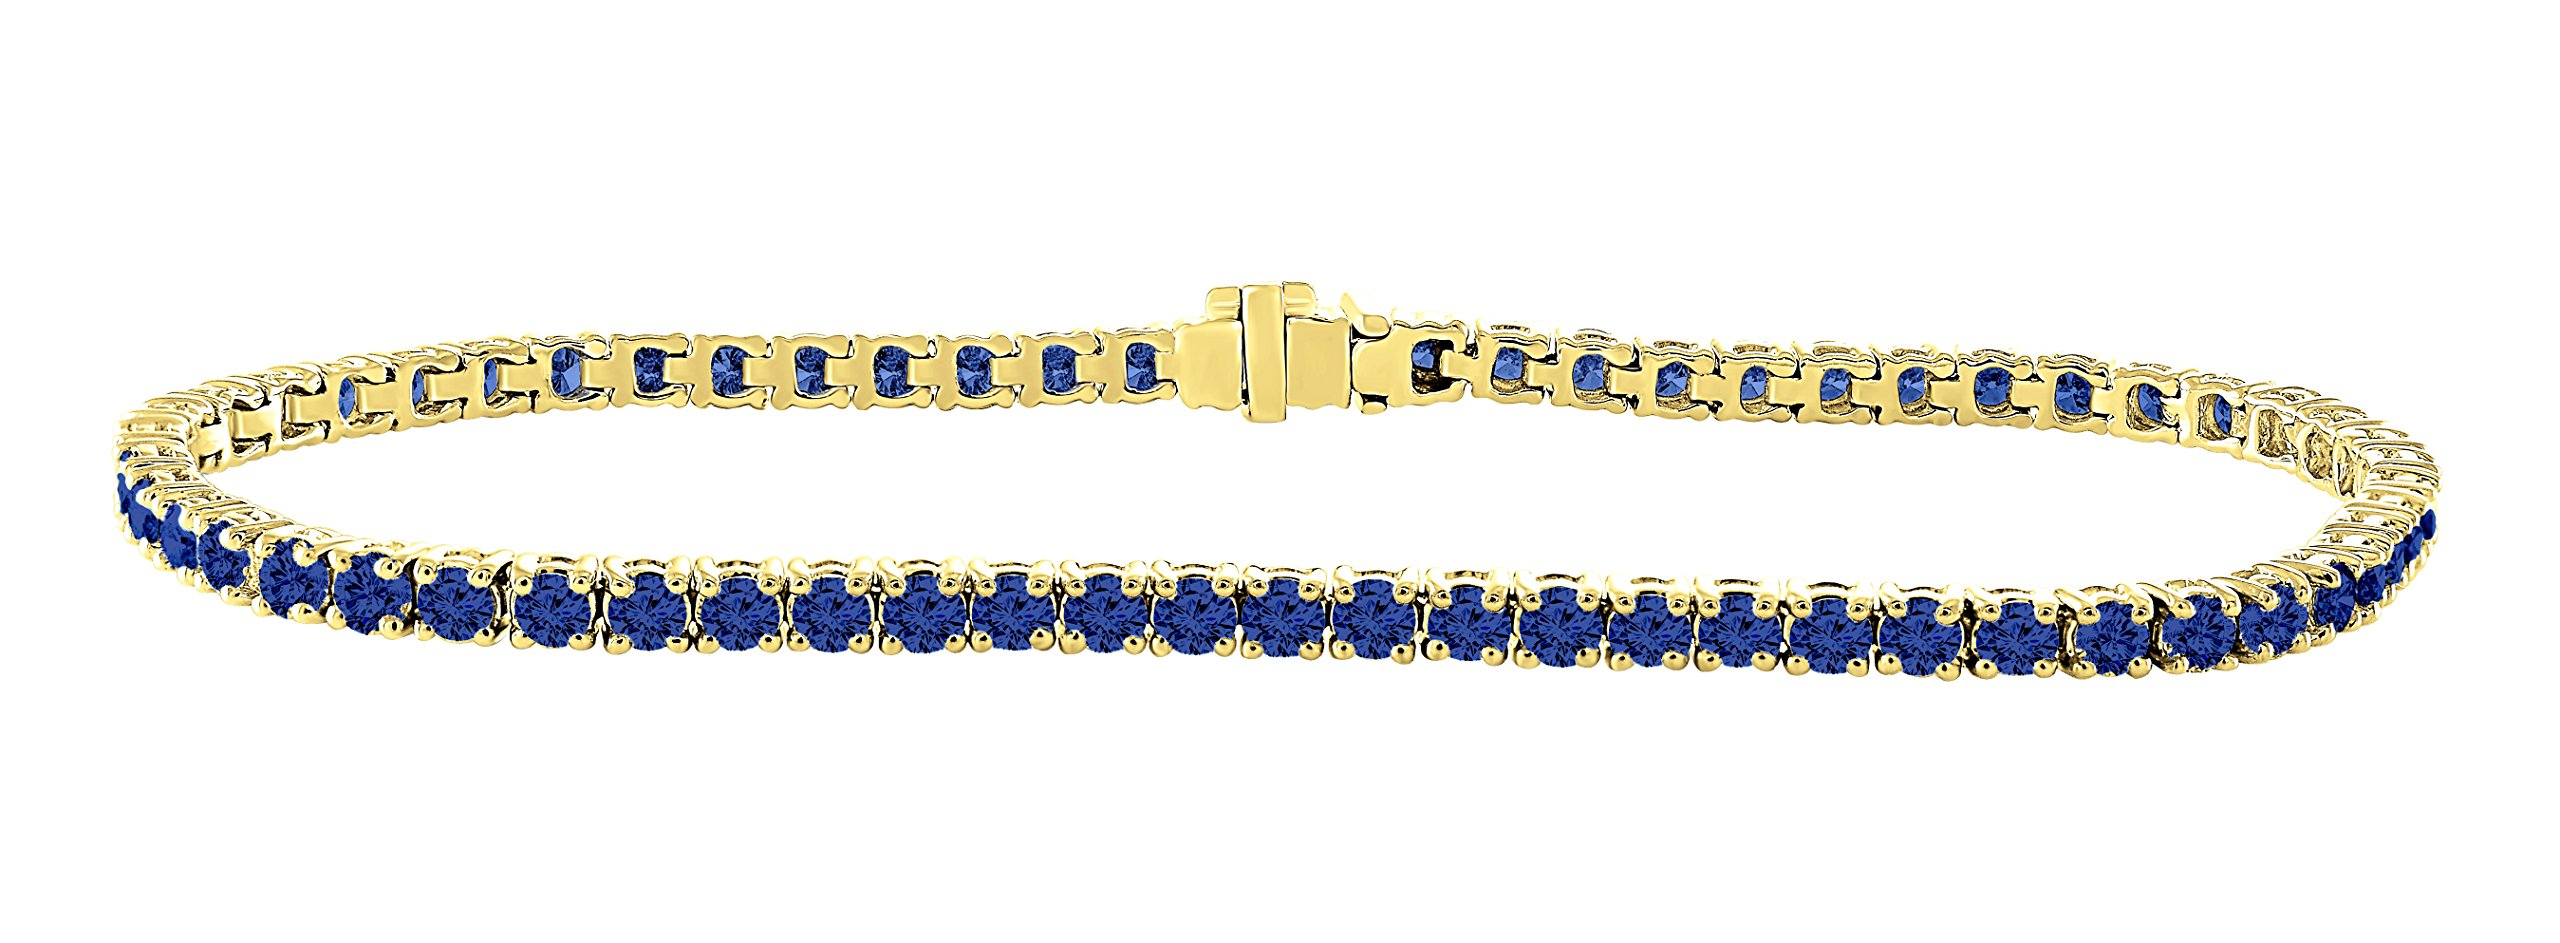 14K Yellow Gold 3.00 Carat (ctw) Natural Real Round Cut Blue Sapphire Tennis Bracelet For Women 7 Inches